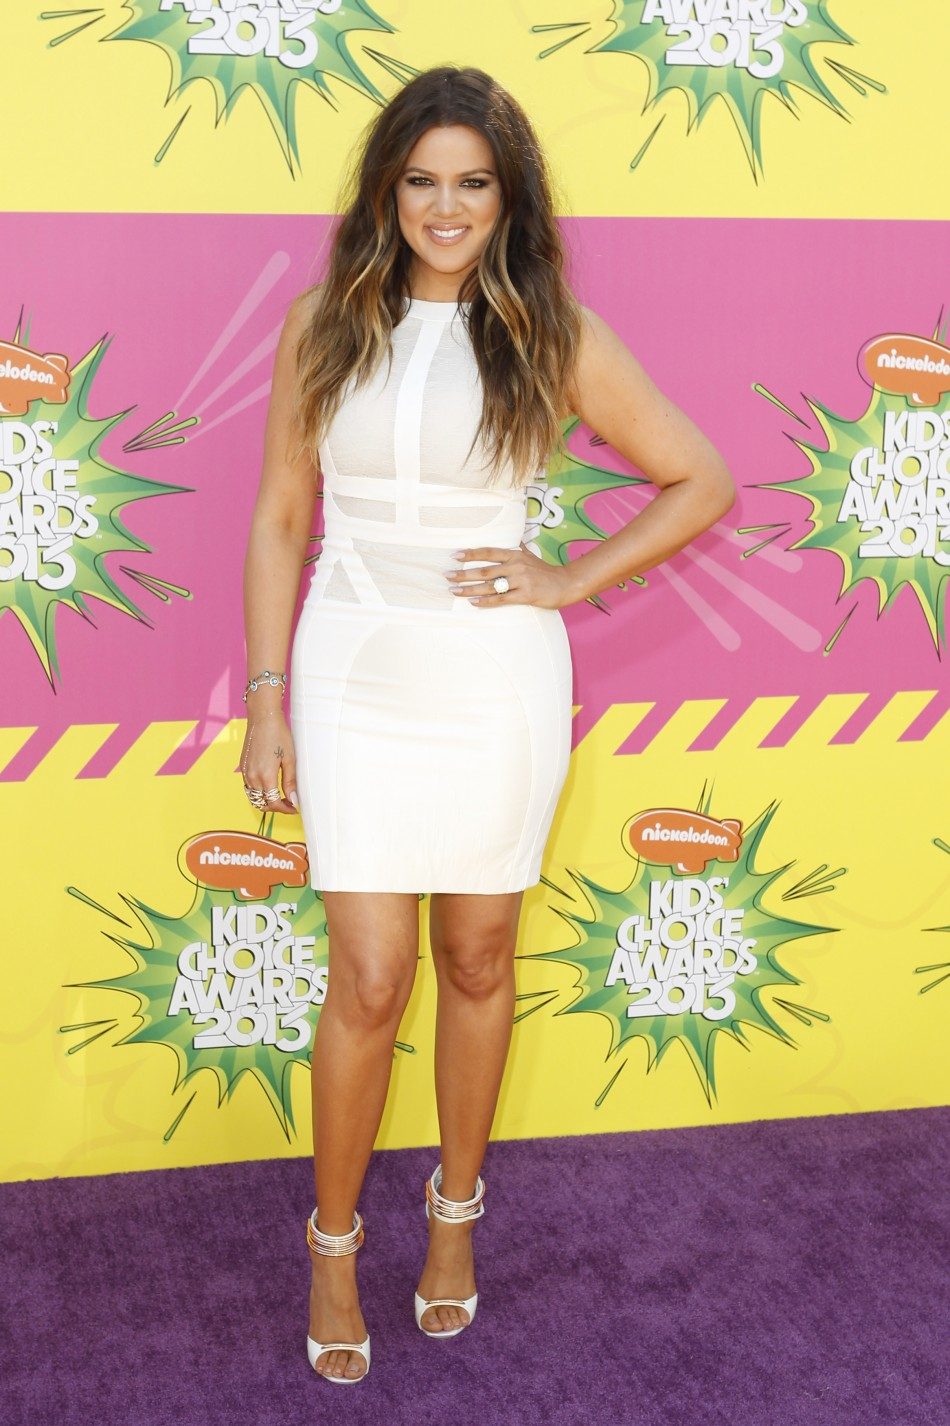 Actress Khloe Kardashian arrives at the 2013 Kids' Choice Awards